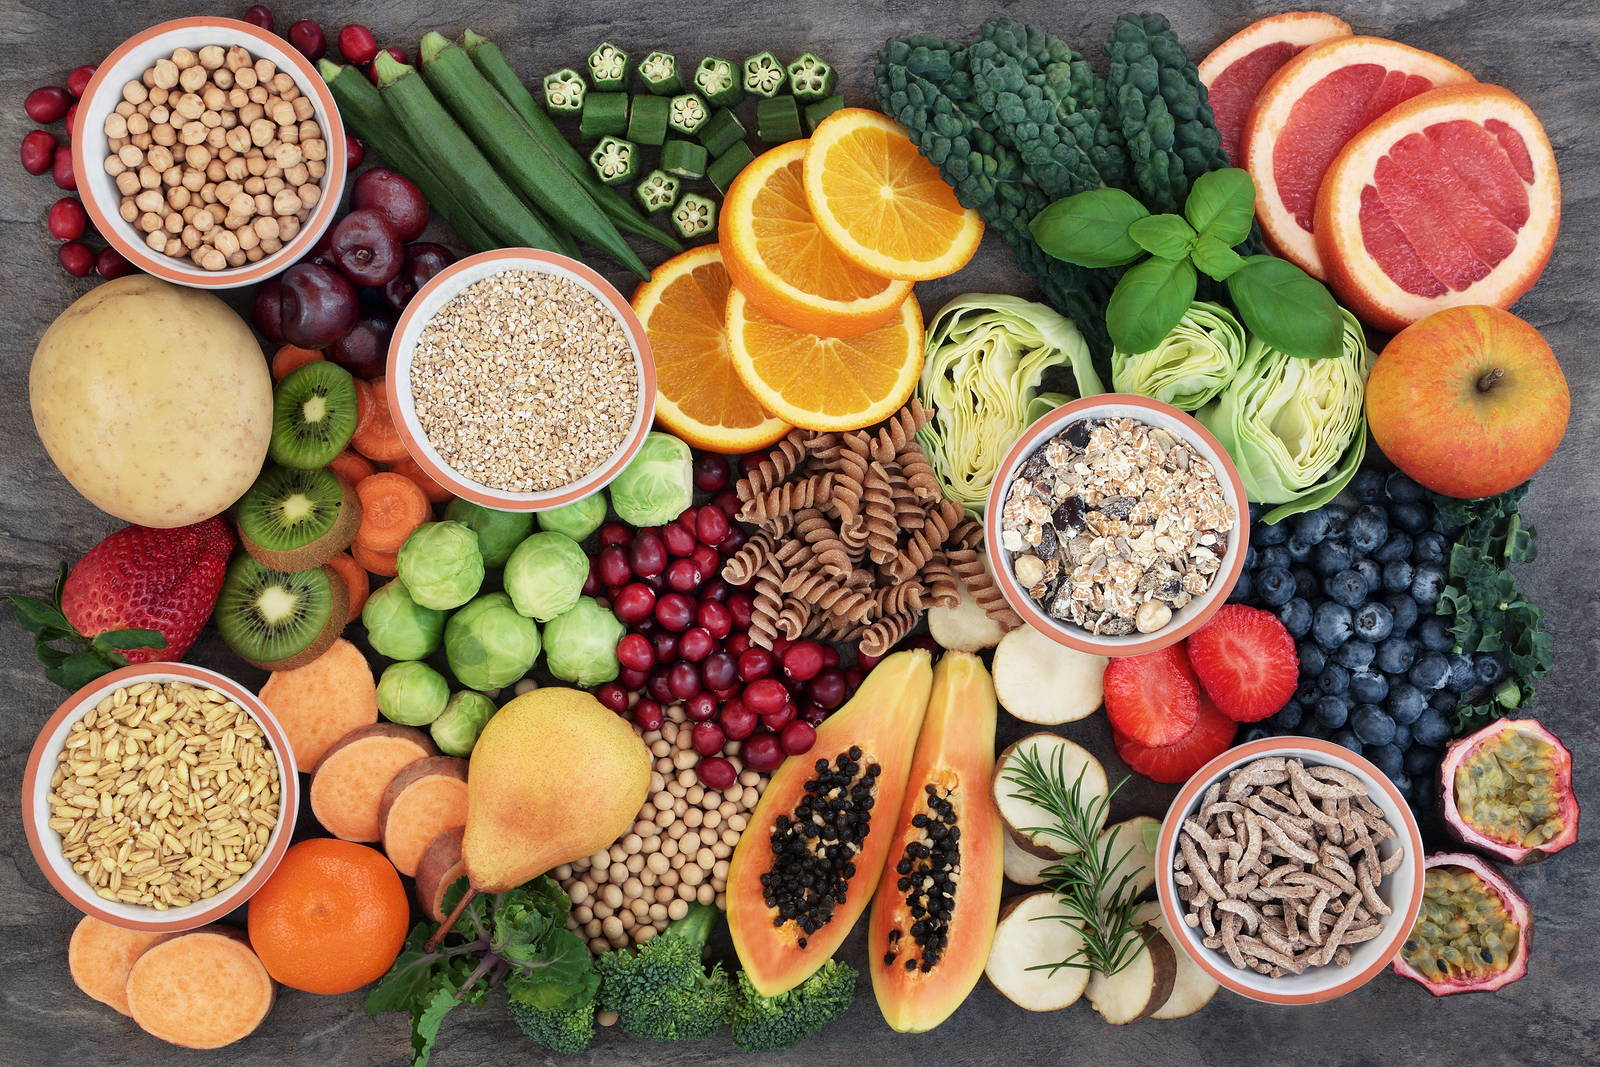 nutritional bioavailability absorption fruits vegetables different food structure tasty salad greens apples oranges nuts vegans fruitarians